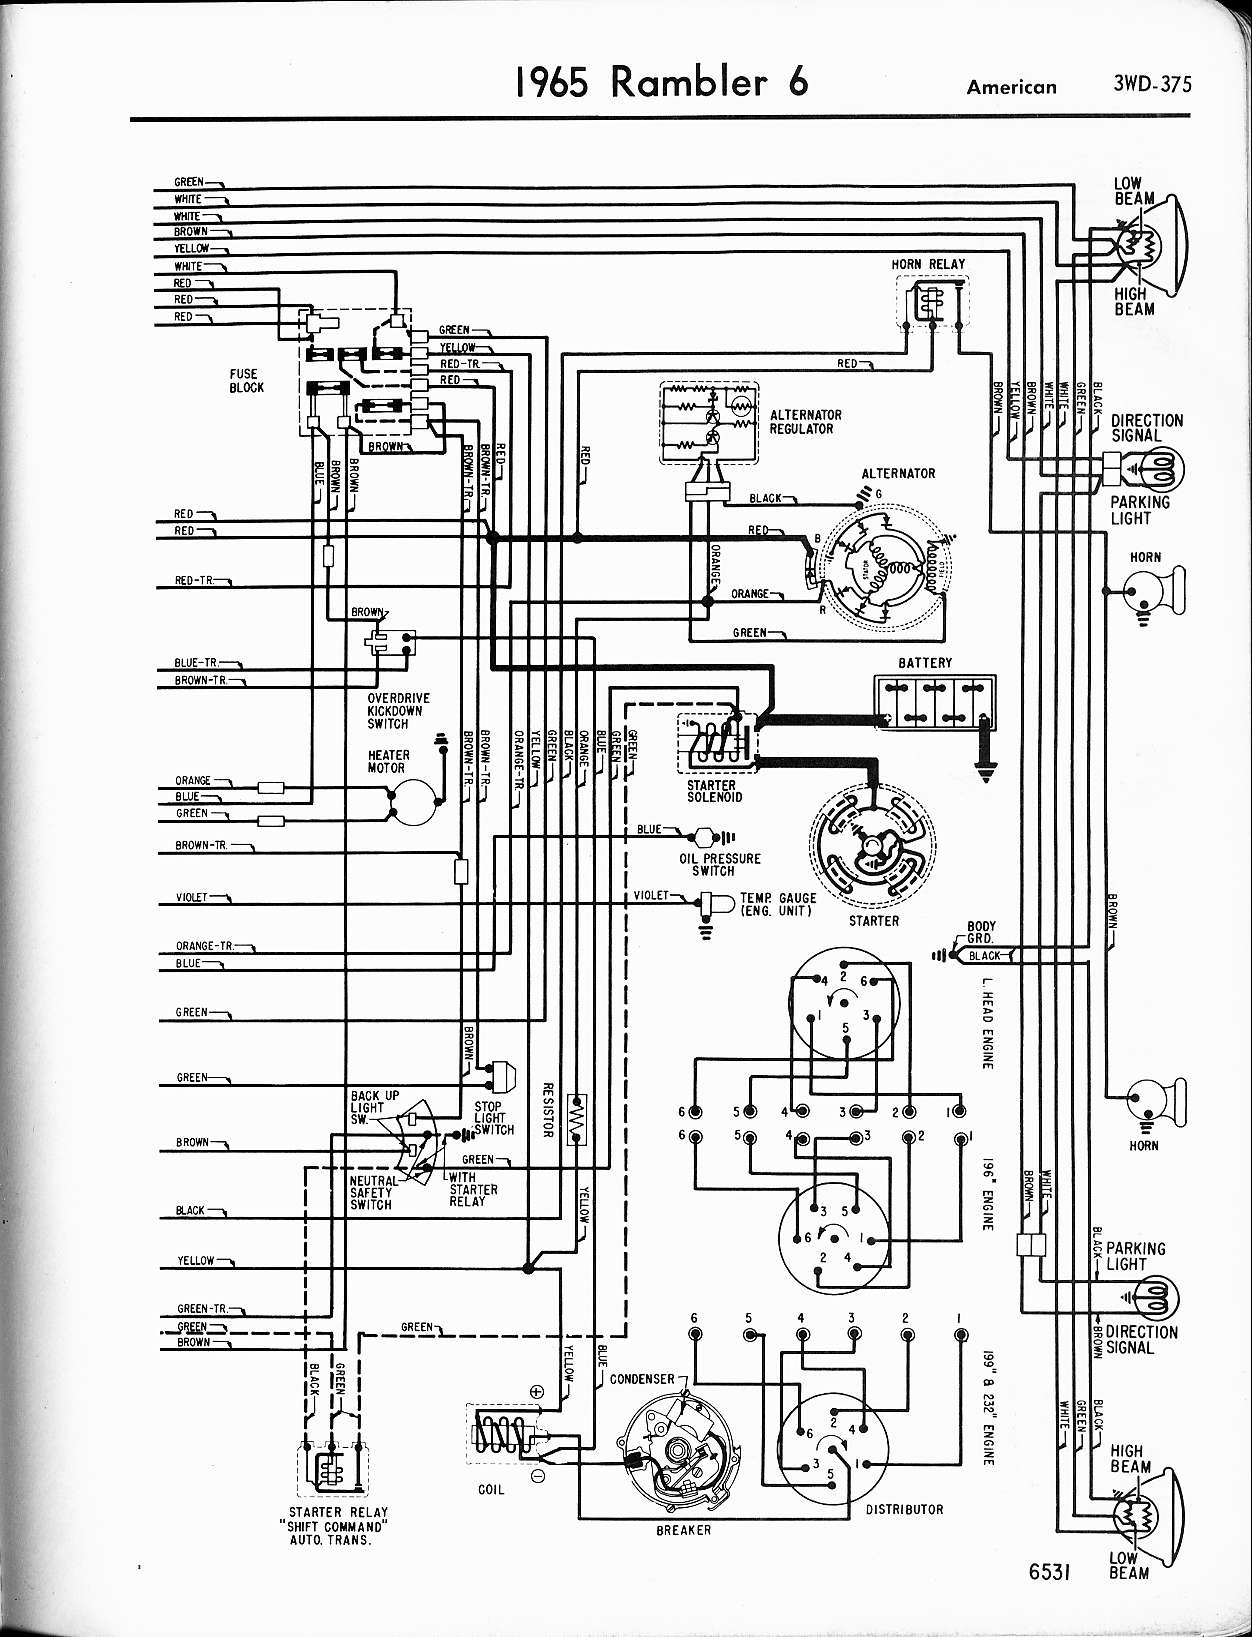 Wiring Diagram 1959 Chrysler Windsor Electrical Rambler Get Free Image About Dodge 1957